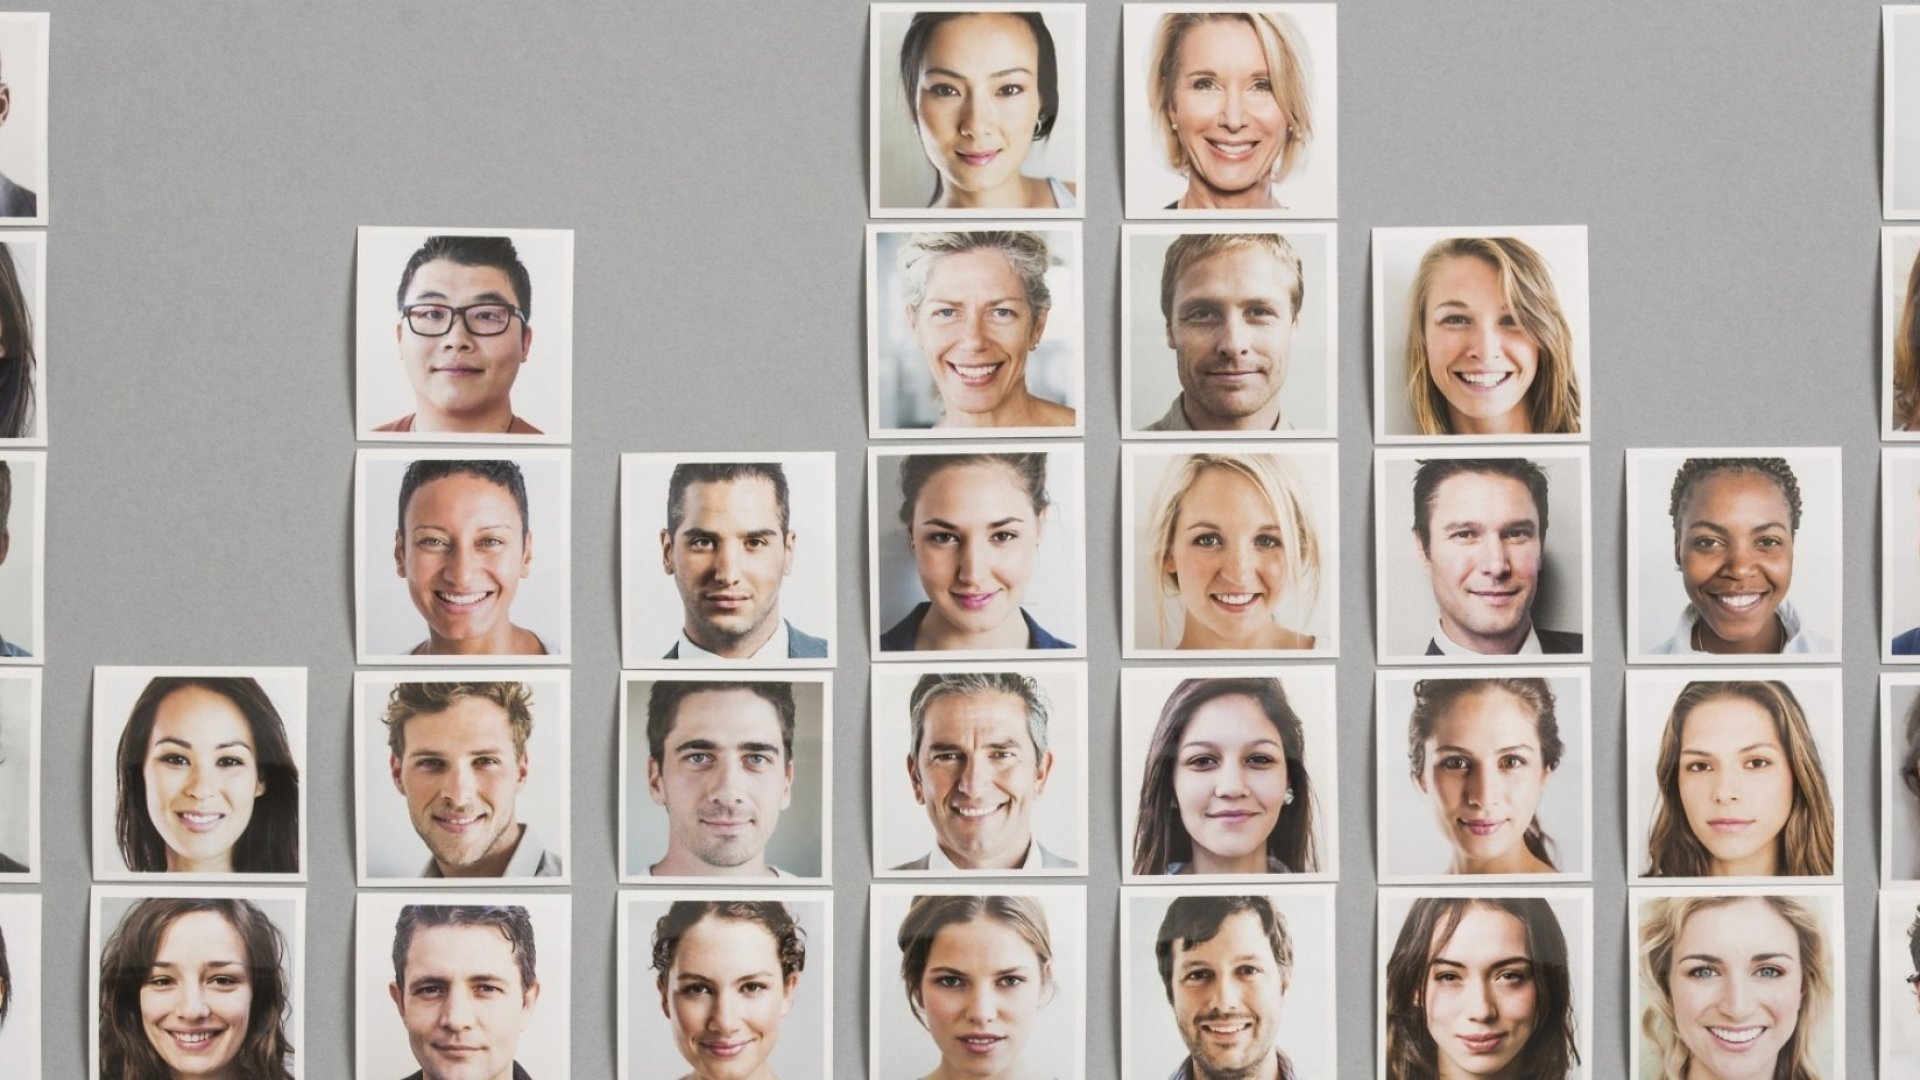 Two Crucial HR Trends to Watch in 2020